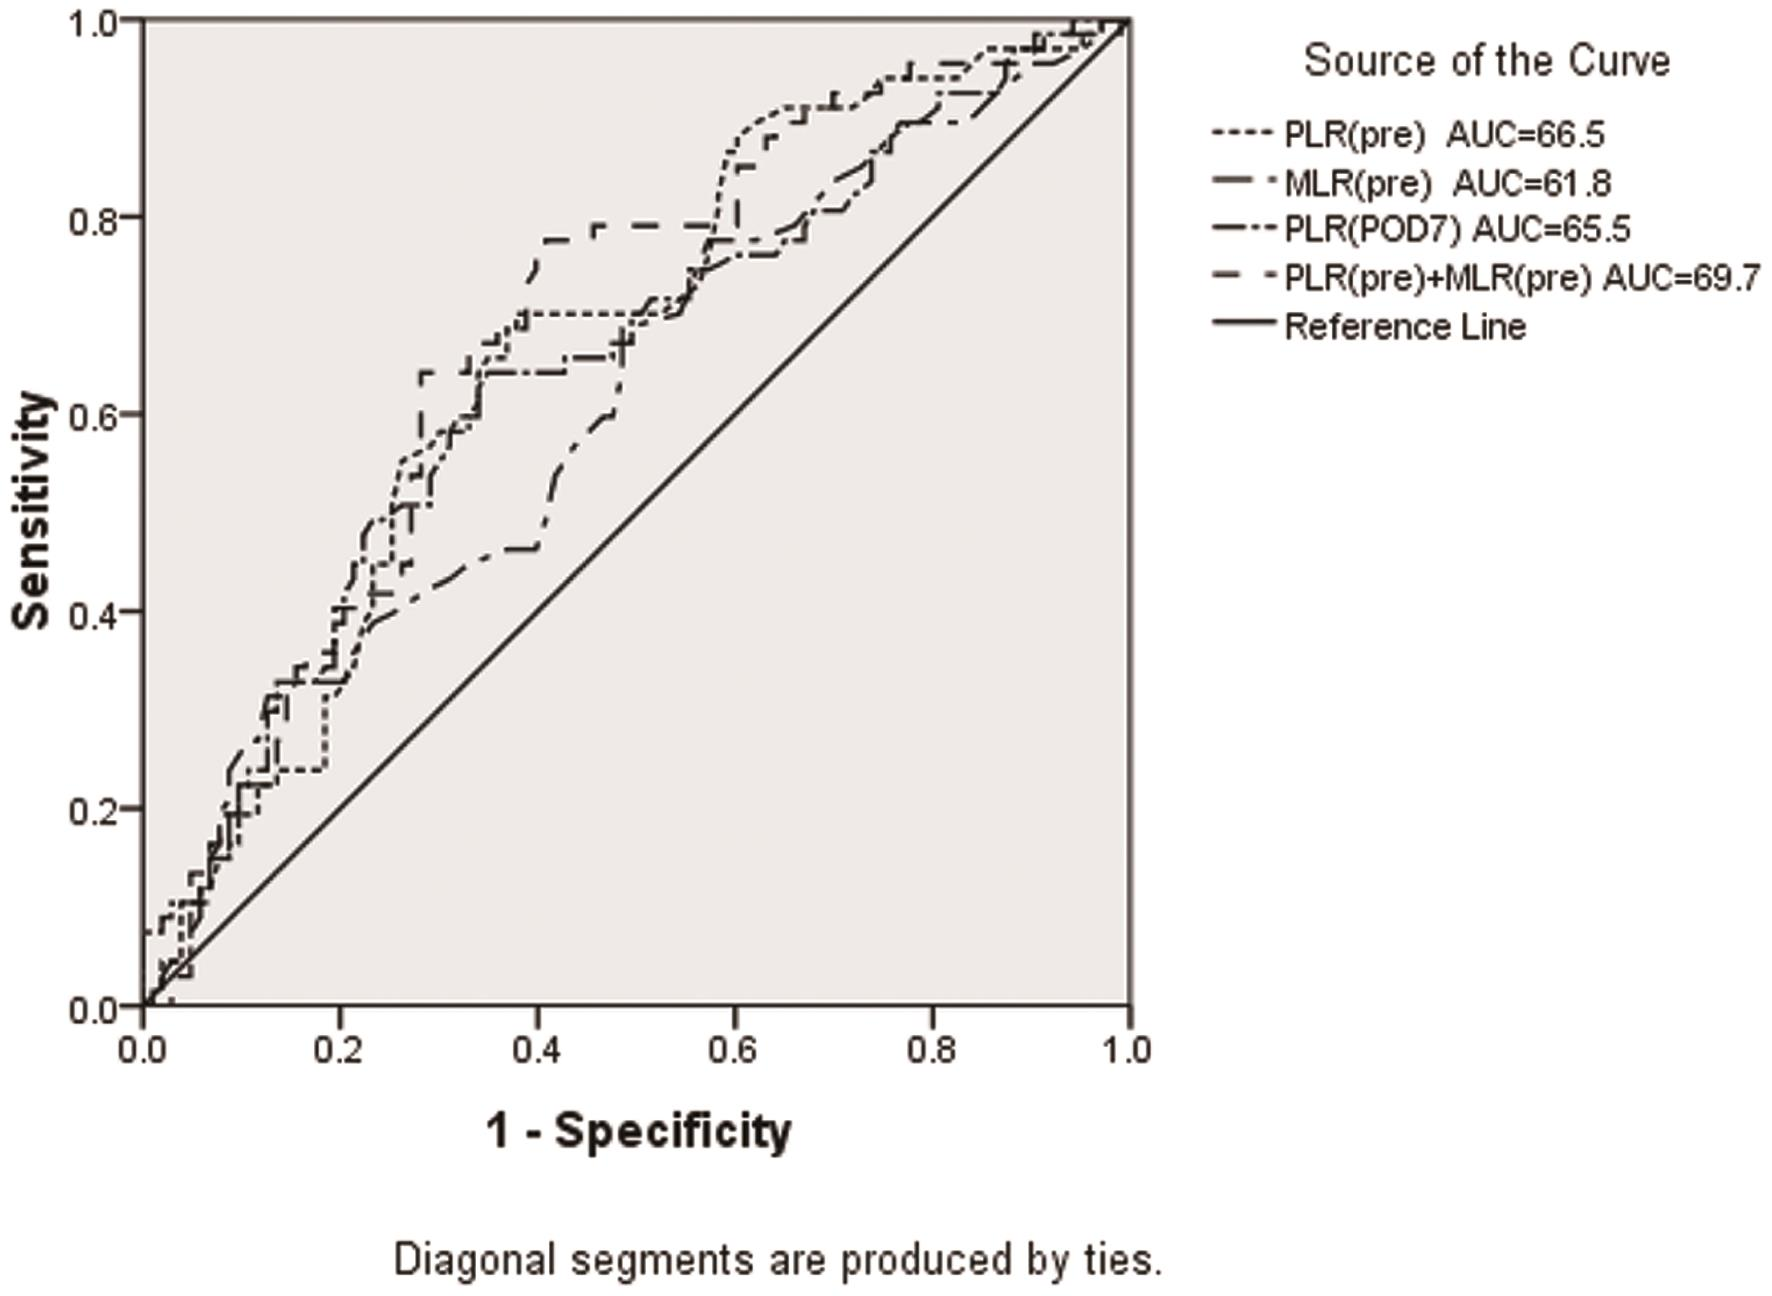 ROC curve analysis for predicting PVT by PLR (pre), MLR (pre), PLR (post-D7) and combined markers in the estimation cohort.